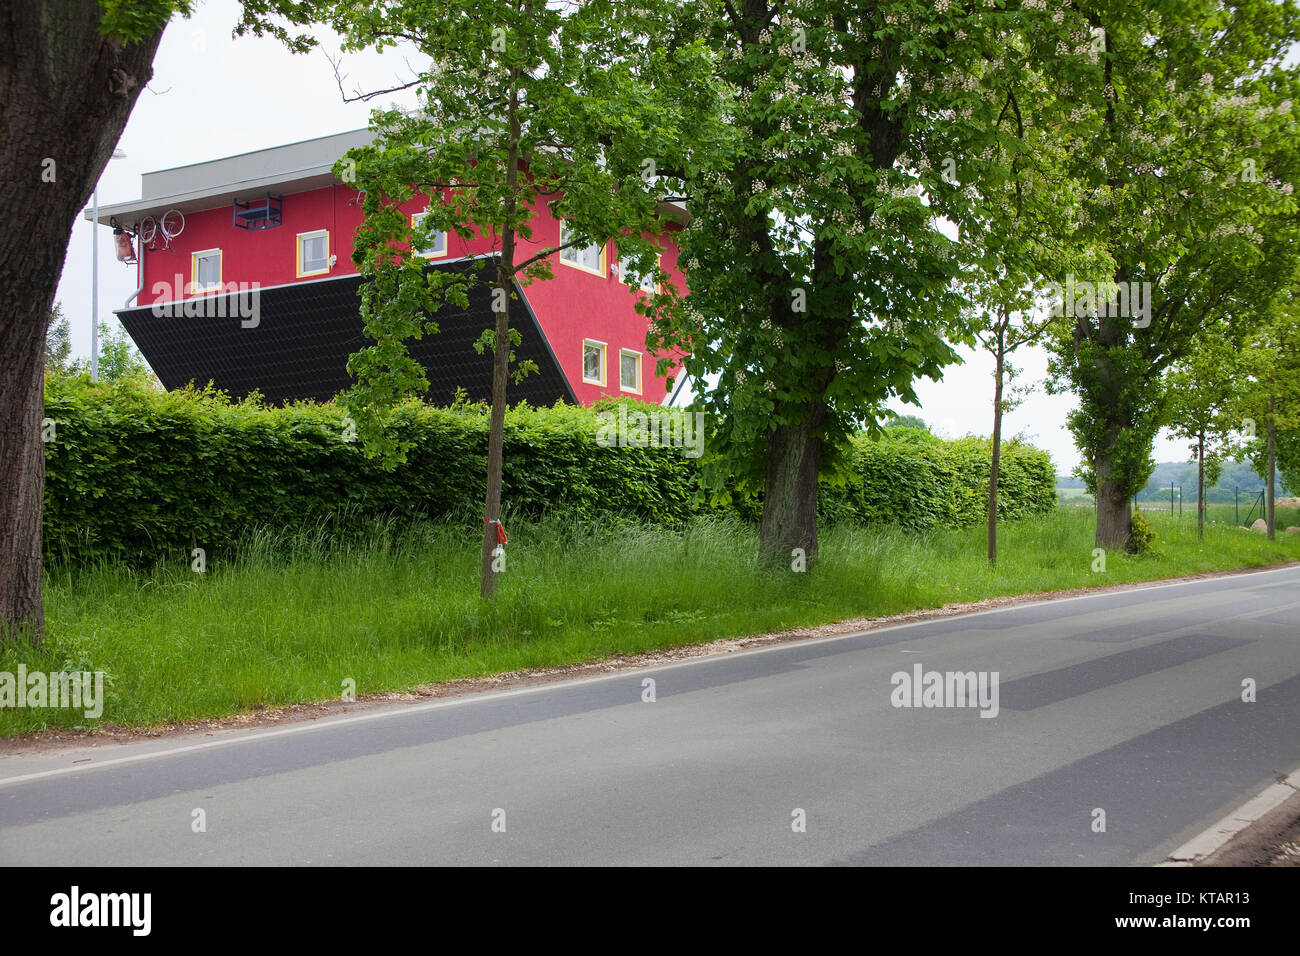 House upside down, Putbus, Ruegen island, Mecklenburg-Western Pomerania, Baltic Sea, Germany, Europe - Stock Image